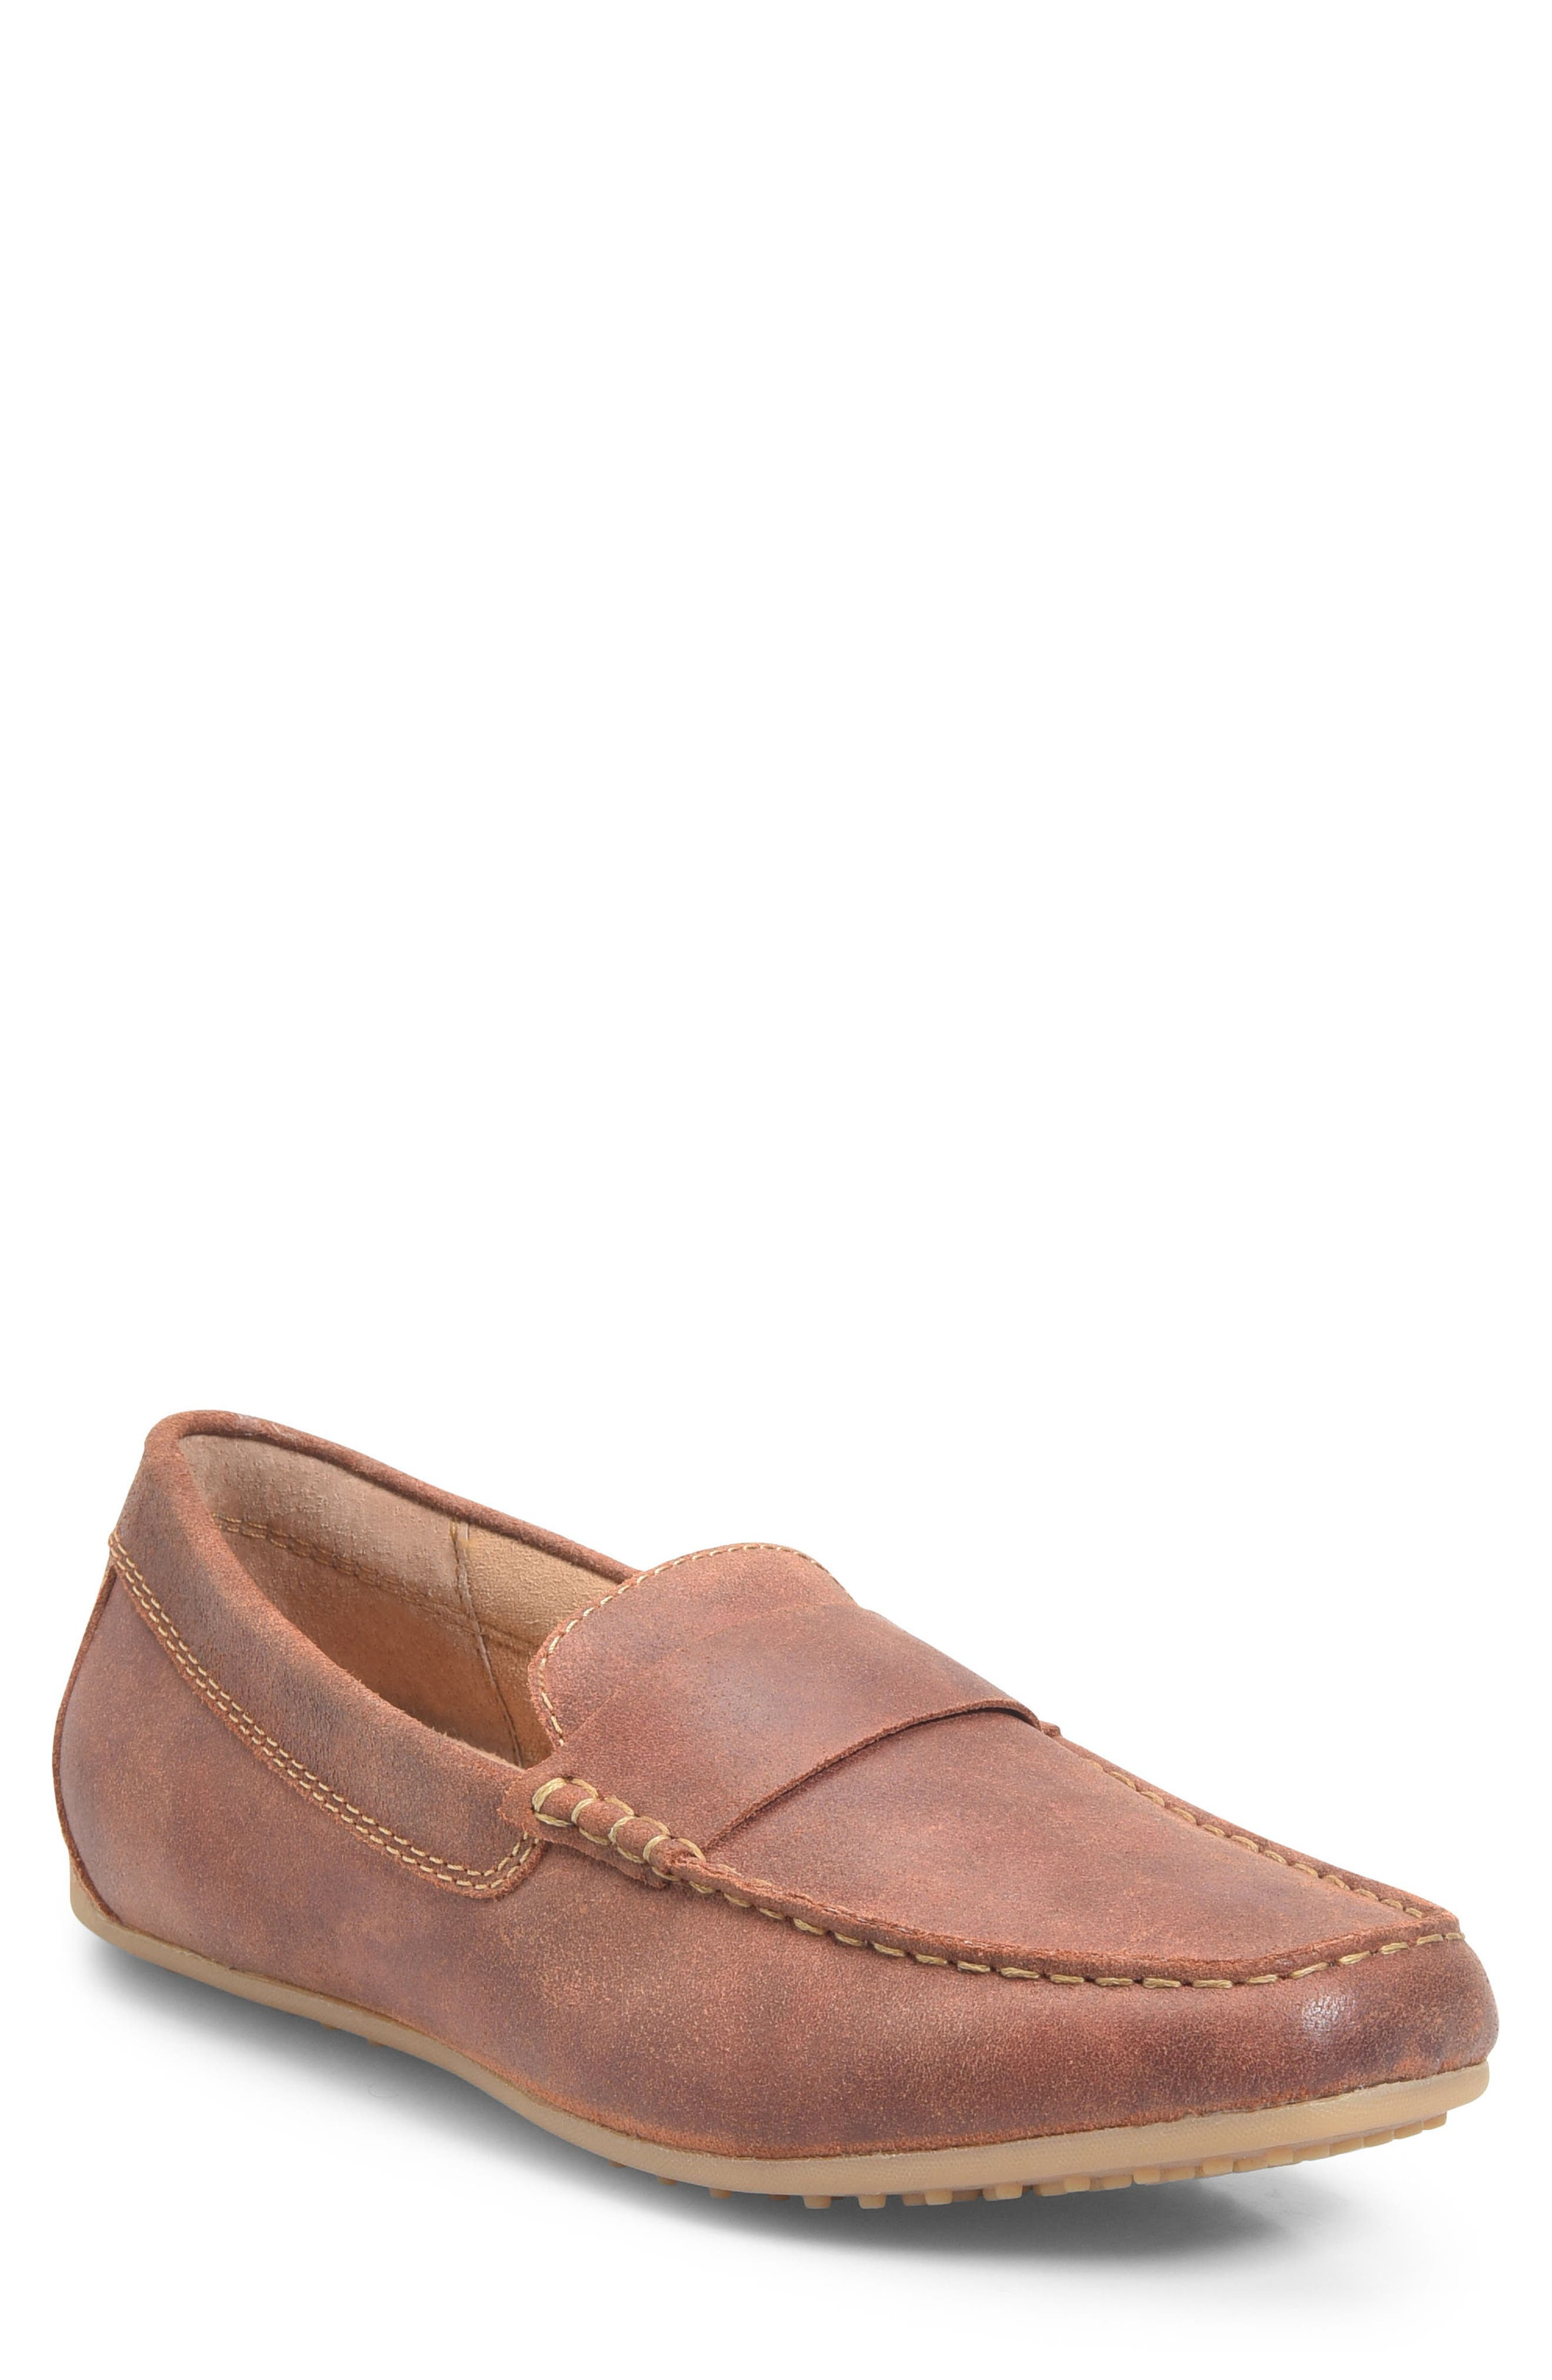 Ratner Driving Loafer,                             Main thumbnail 1, color,                             Rust Leather